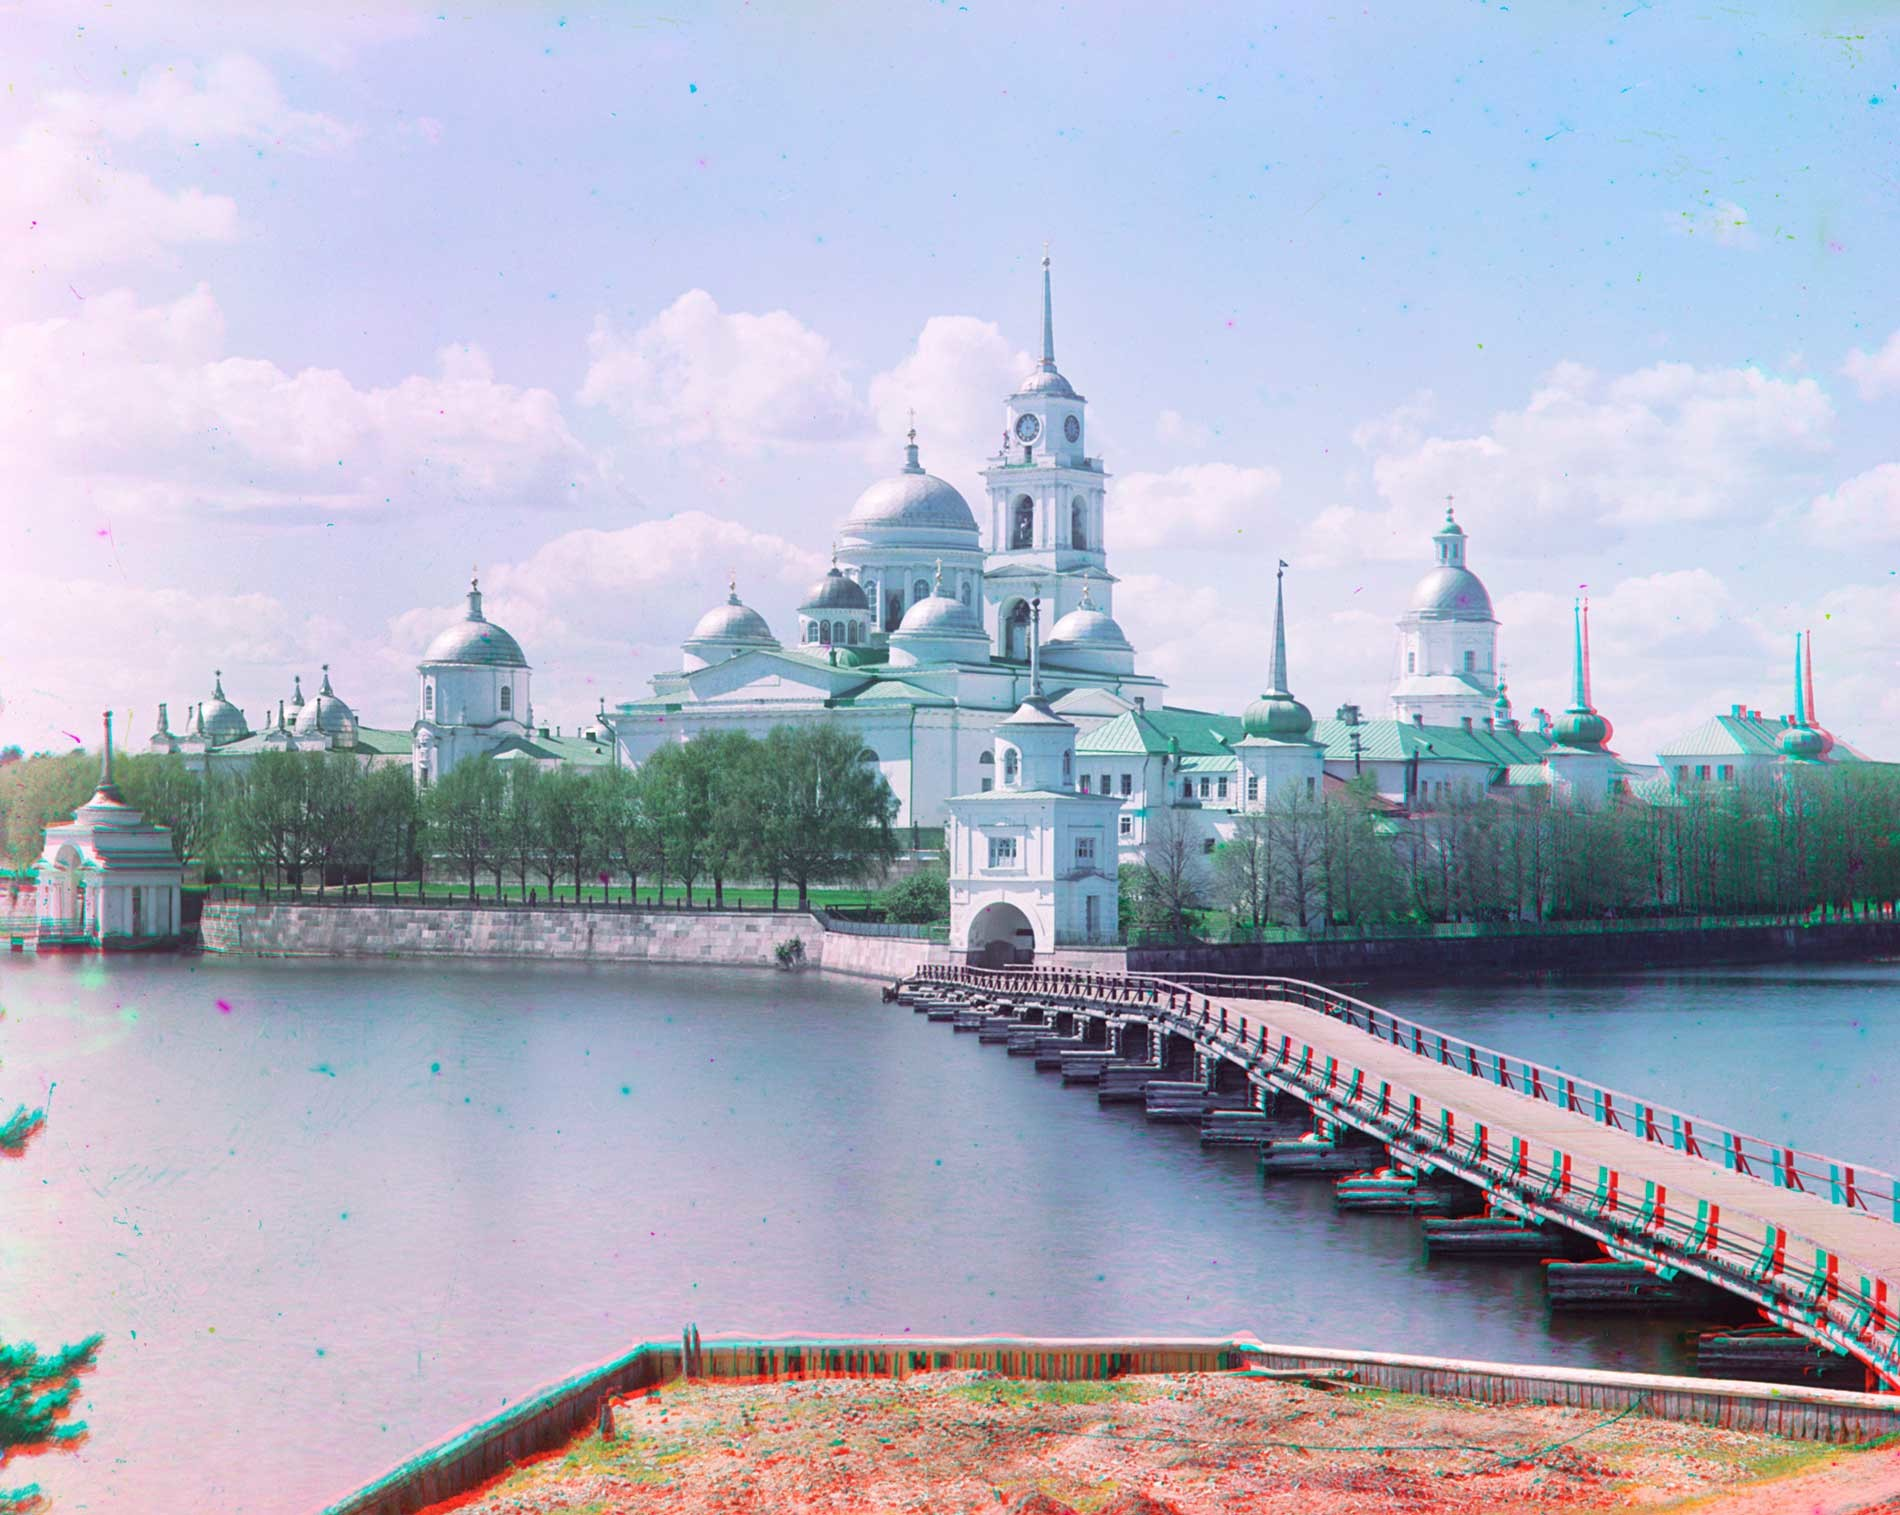 Nilova Pustyn, northeast view from Svetlitsa village. From left: Archbishop's Landing, Archbishop's Chambers, Church of St. Nilus over East Gate, Epiphany Cathedral&bell tower, Svetlitsa Tower, Refectory, Church of SS. Peter&Paul over West Gate. Summer 1910.